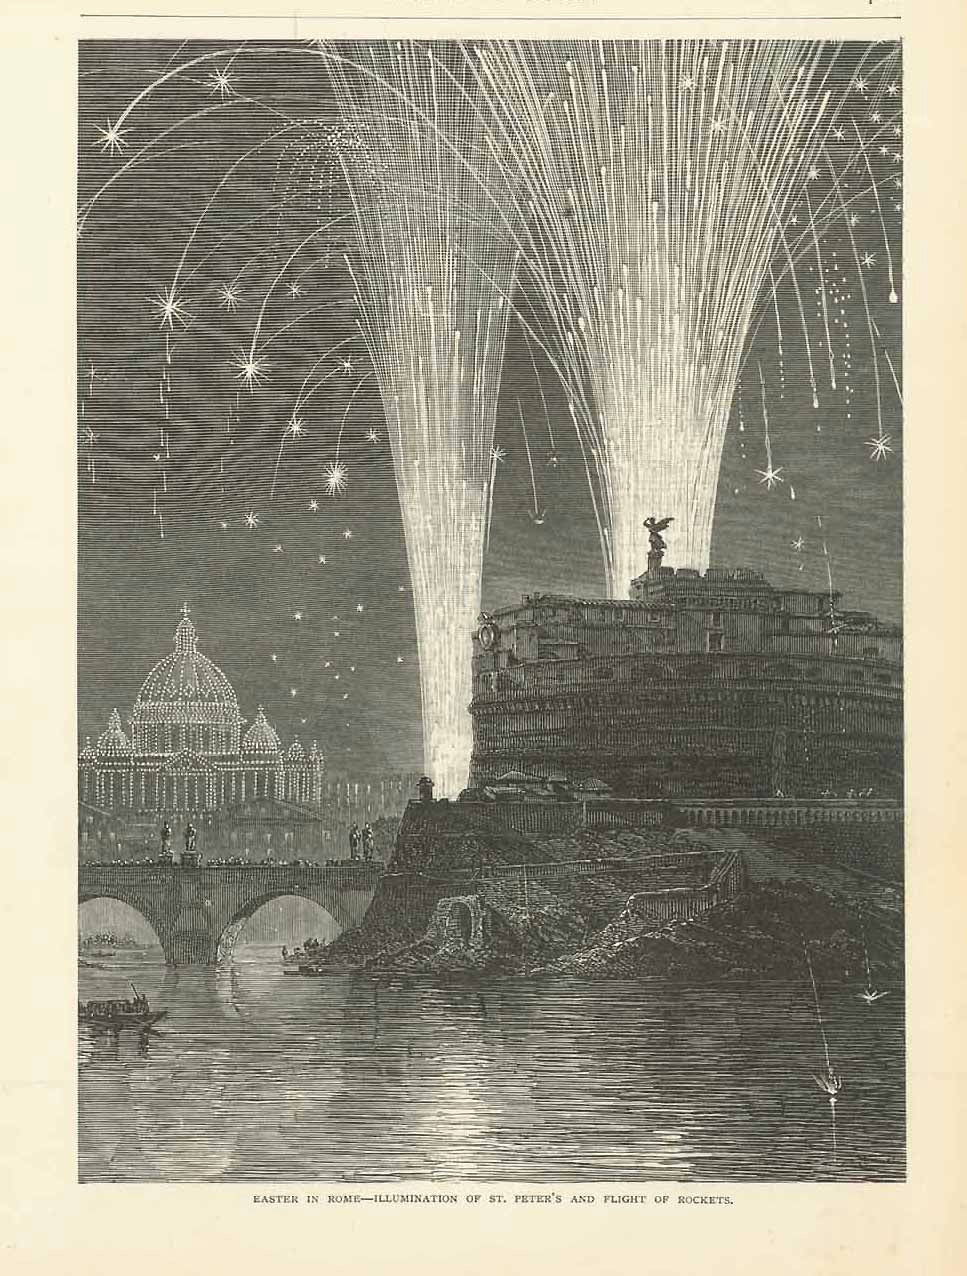 """Easter in Rome - Illumination of St. Peter's and Flght of Rockets""  Wood engraving published ca 1875. Partial artcle about the Easter celebration in Rome.  Original antique print , Firework, Feuerwerk, Ostern, Engelsburg, Engelsbrücke, Fireworks"